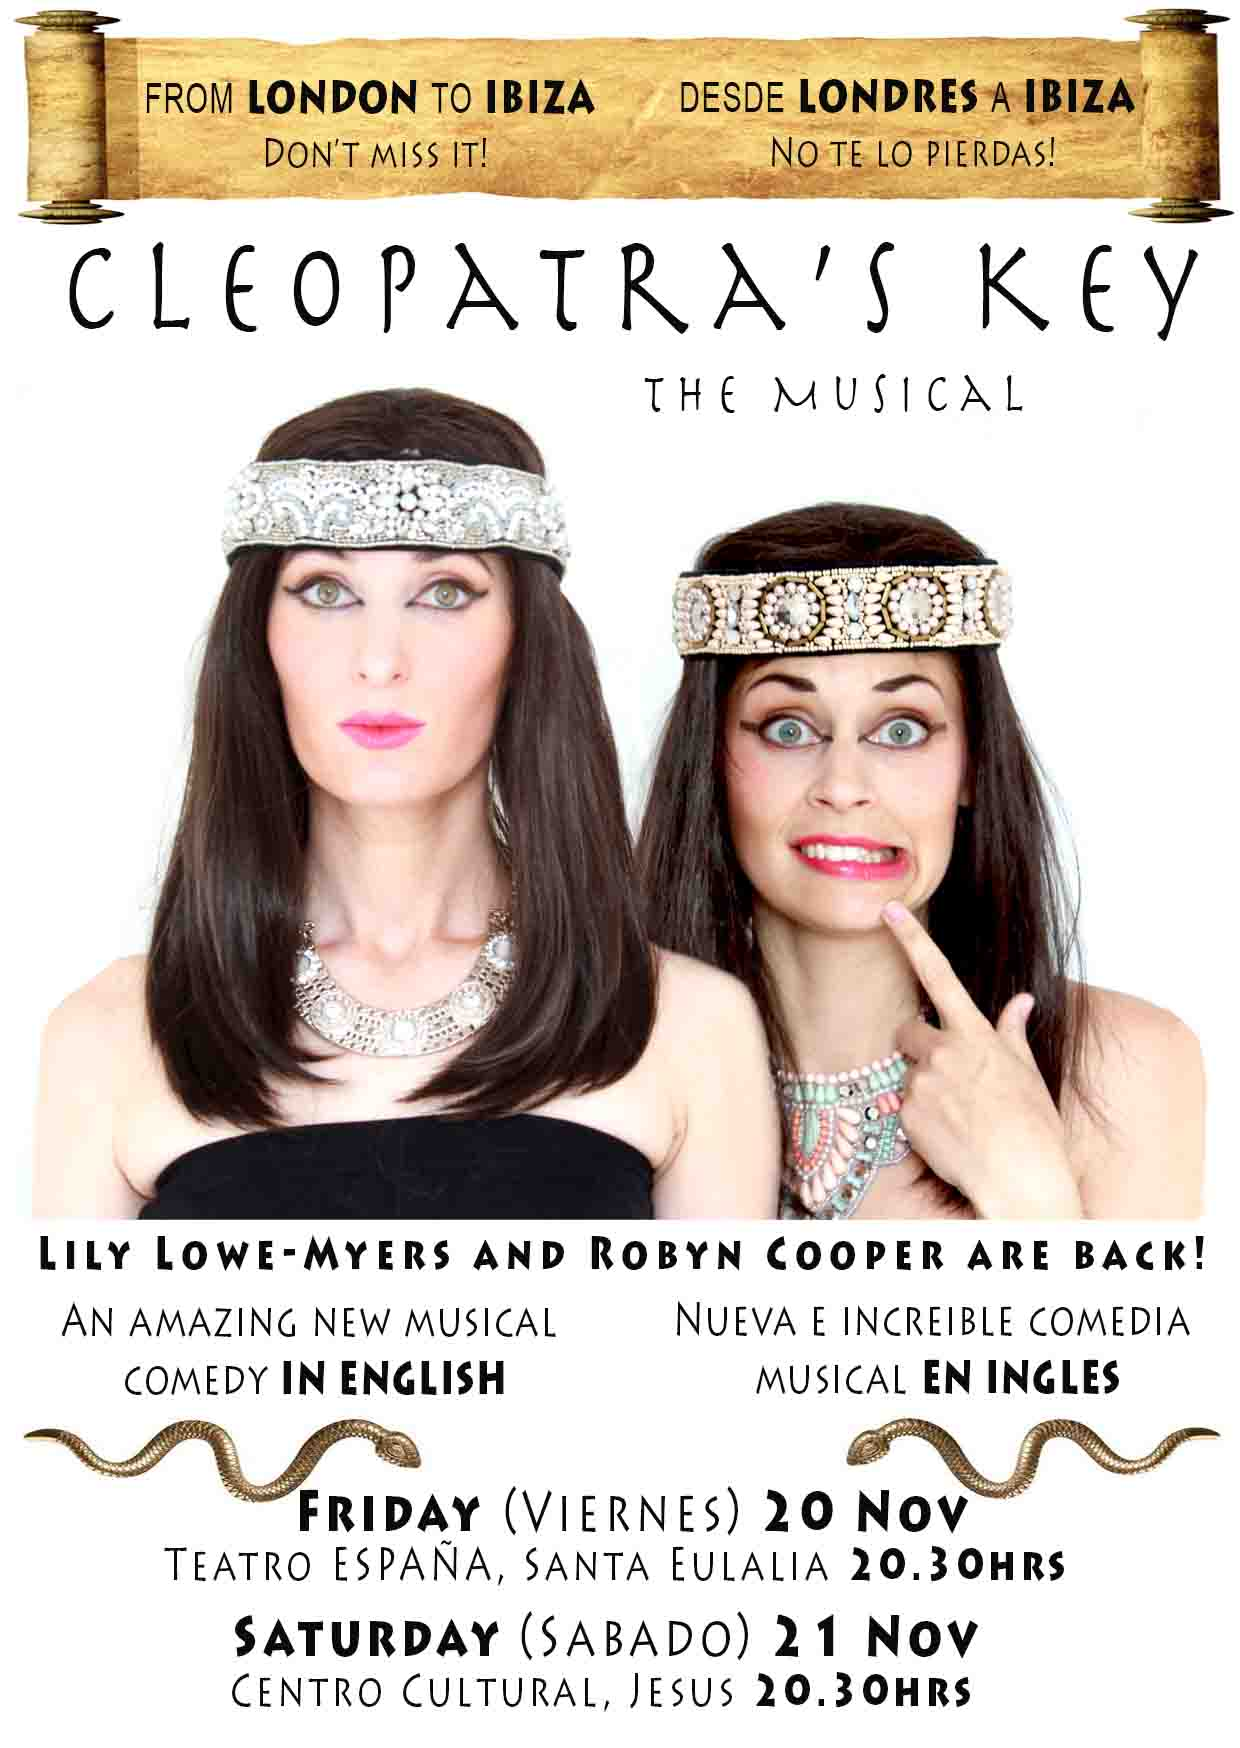 Cleopatra's Key - We're going to Ibiza!